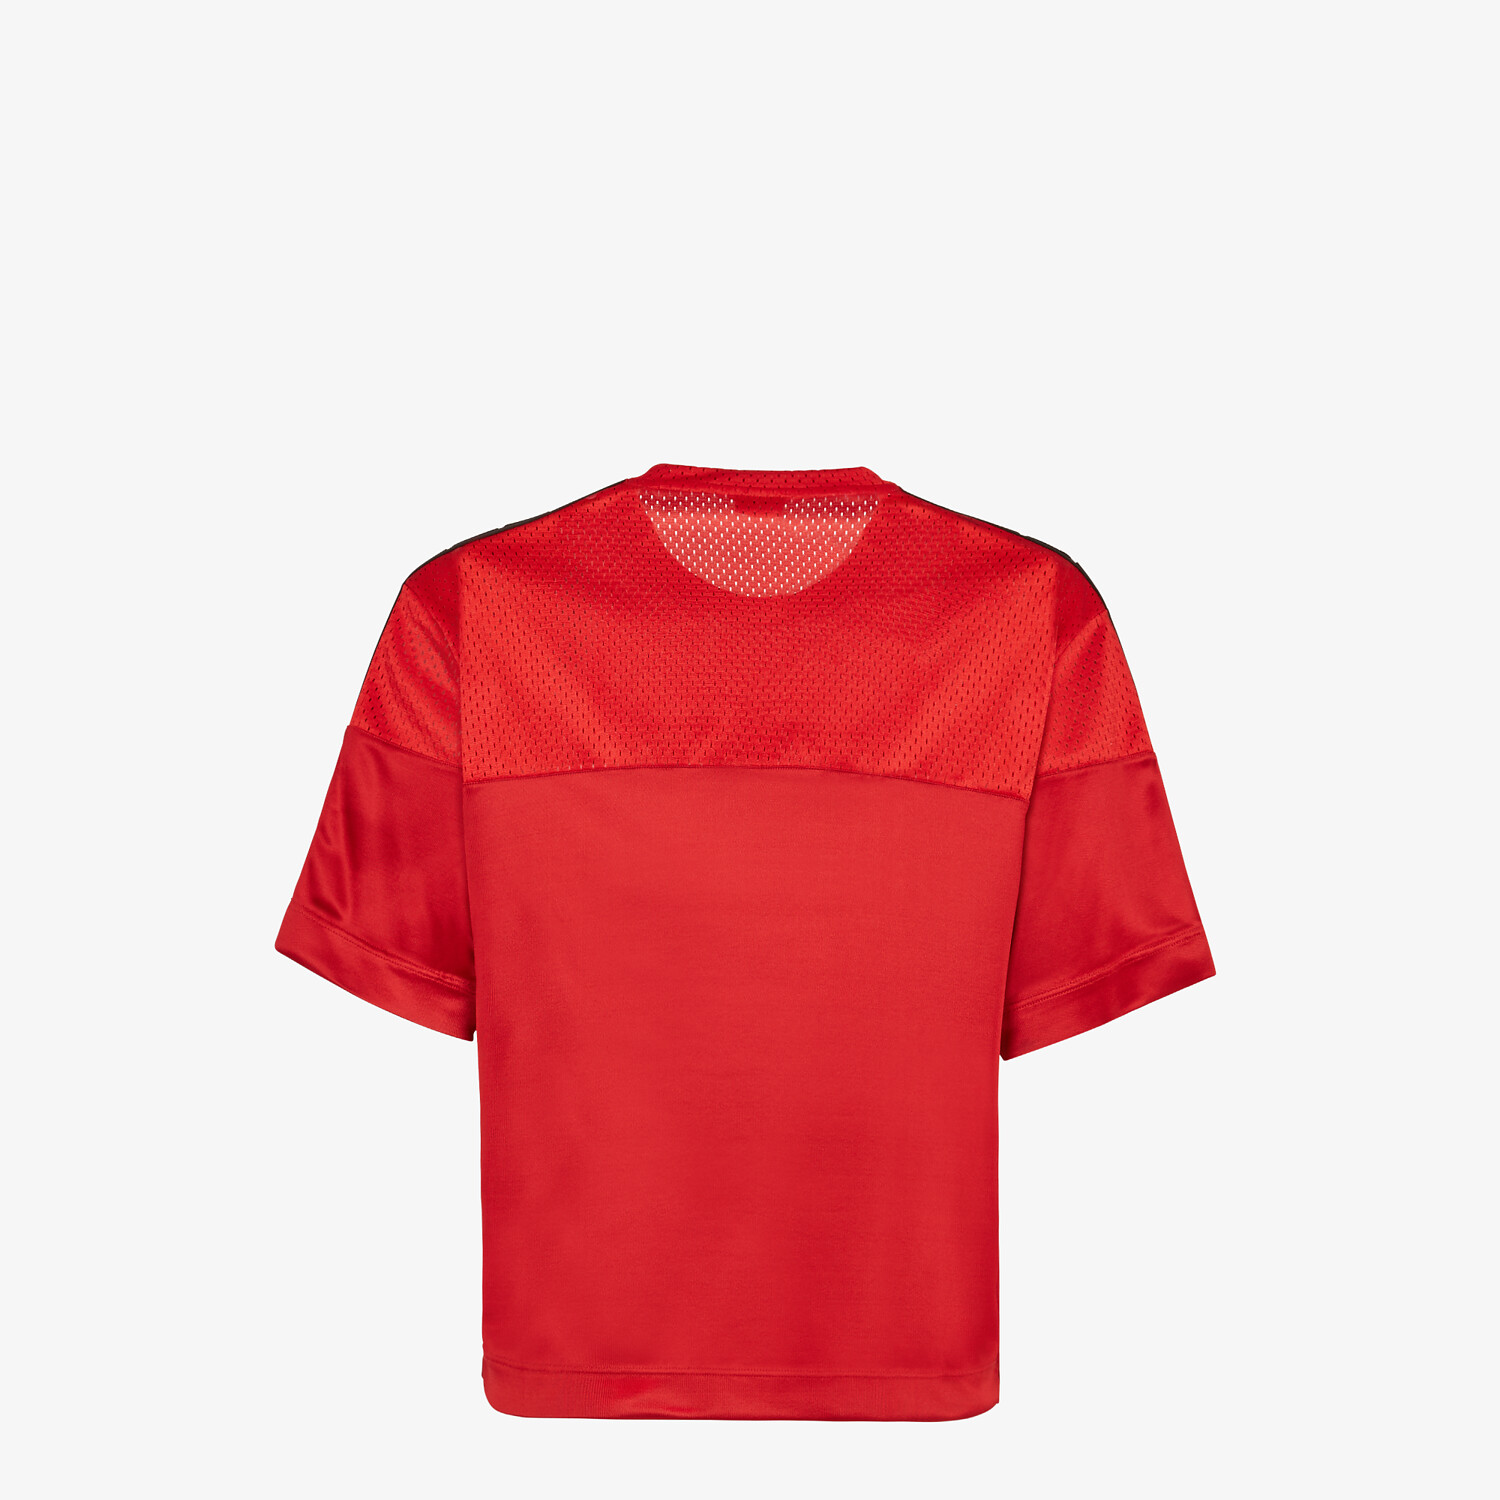 FENDI T-SHIRT - Red tech fabric T-shirt - view 2 detail